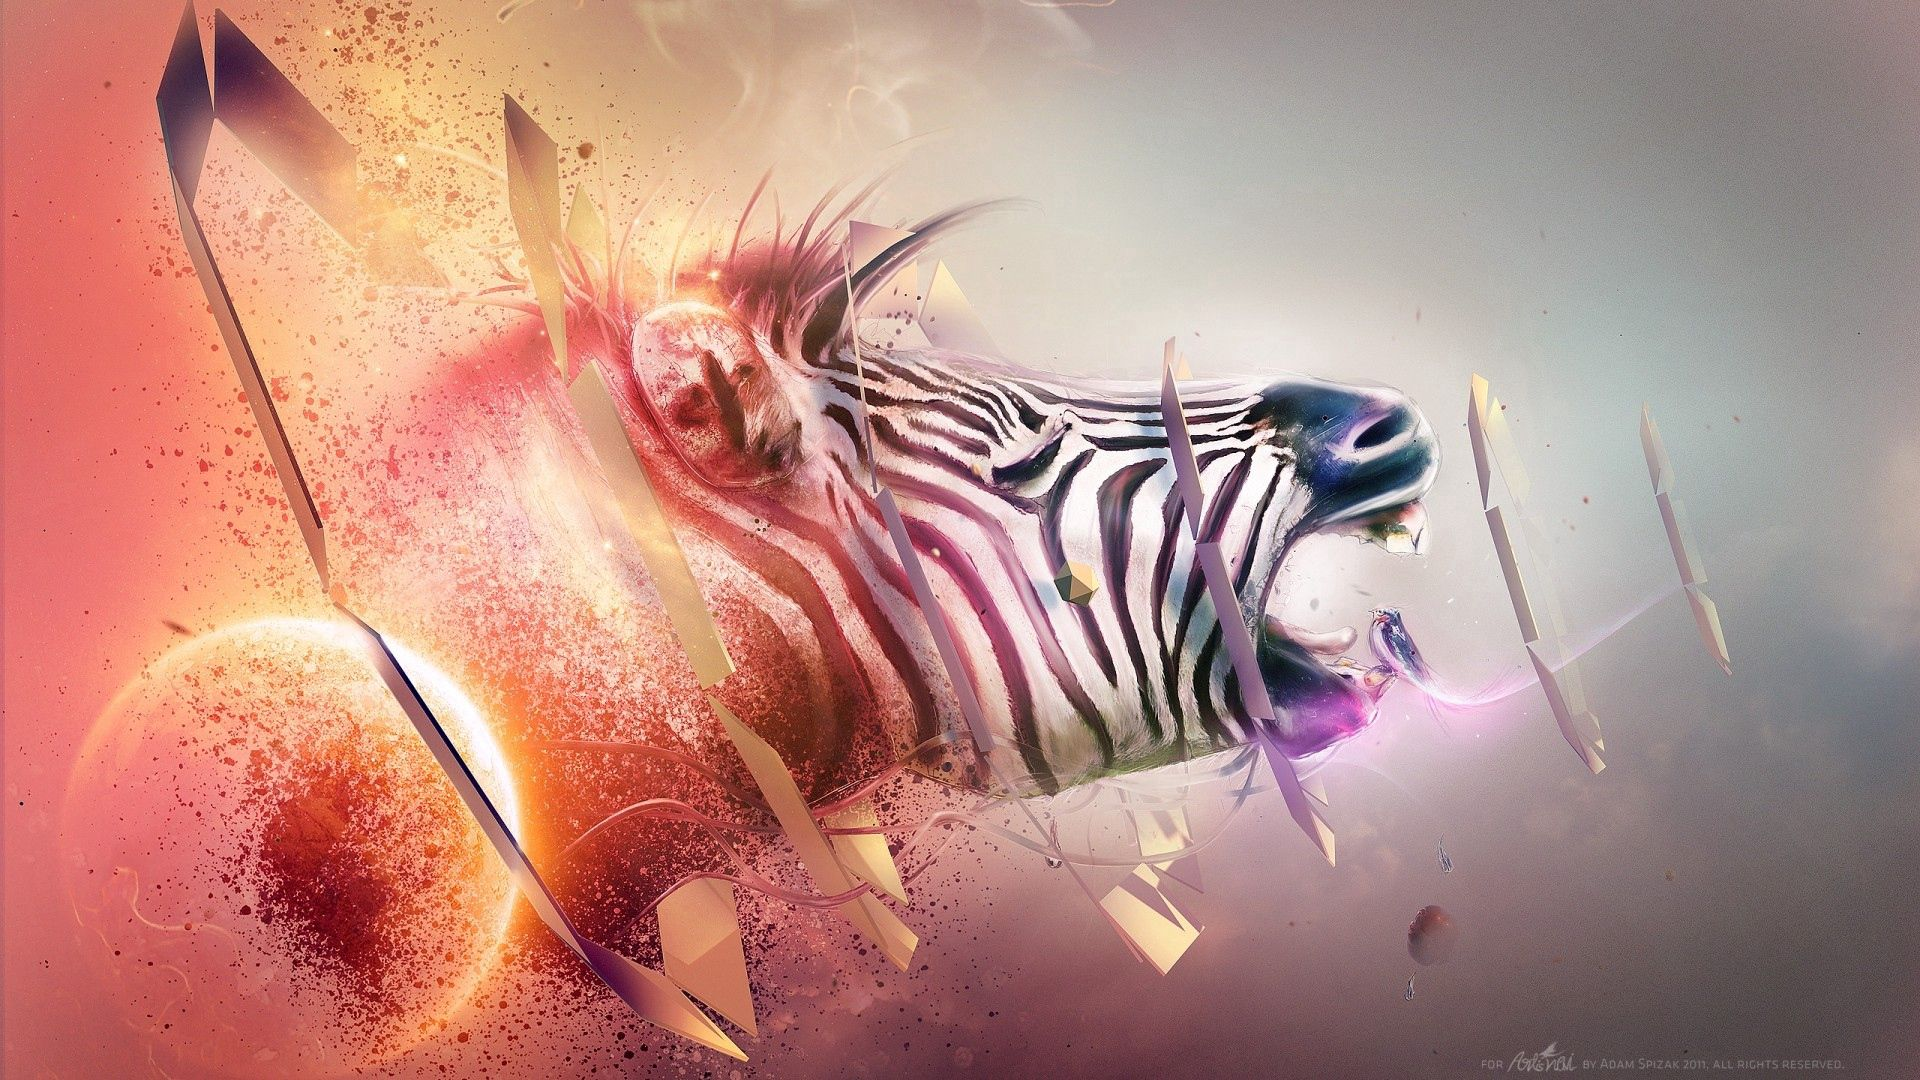 151294 download wallpaper Abstract, Zebra, Head, Stripes, Streaks, Explosion, Fantasy screensavers and pictures for free